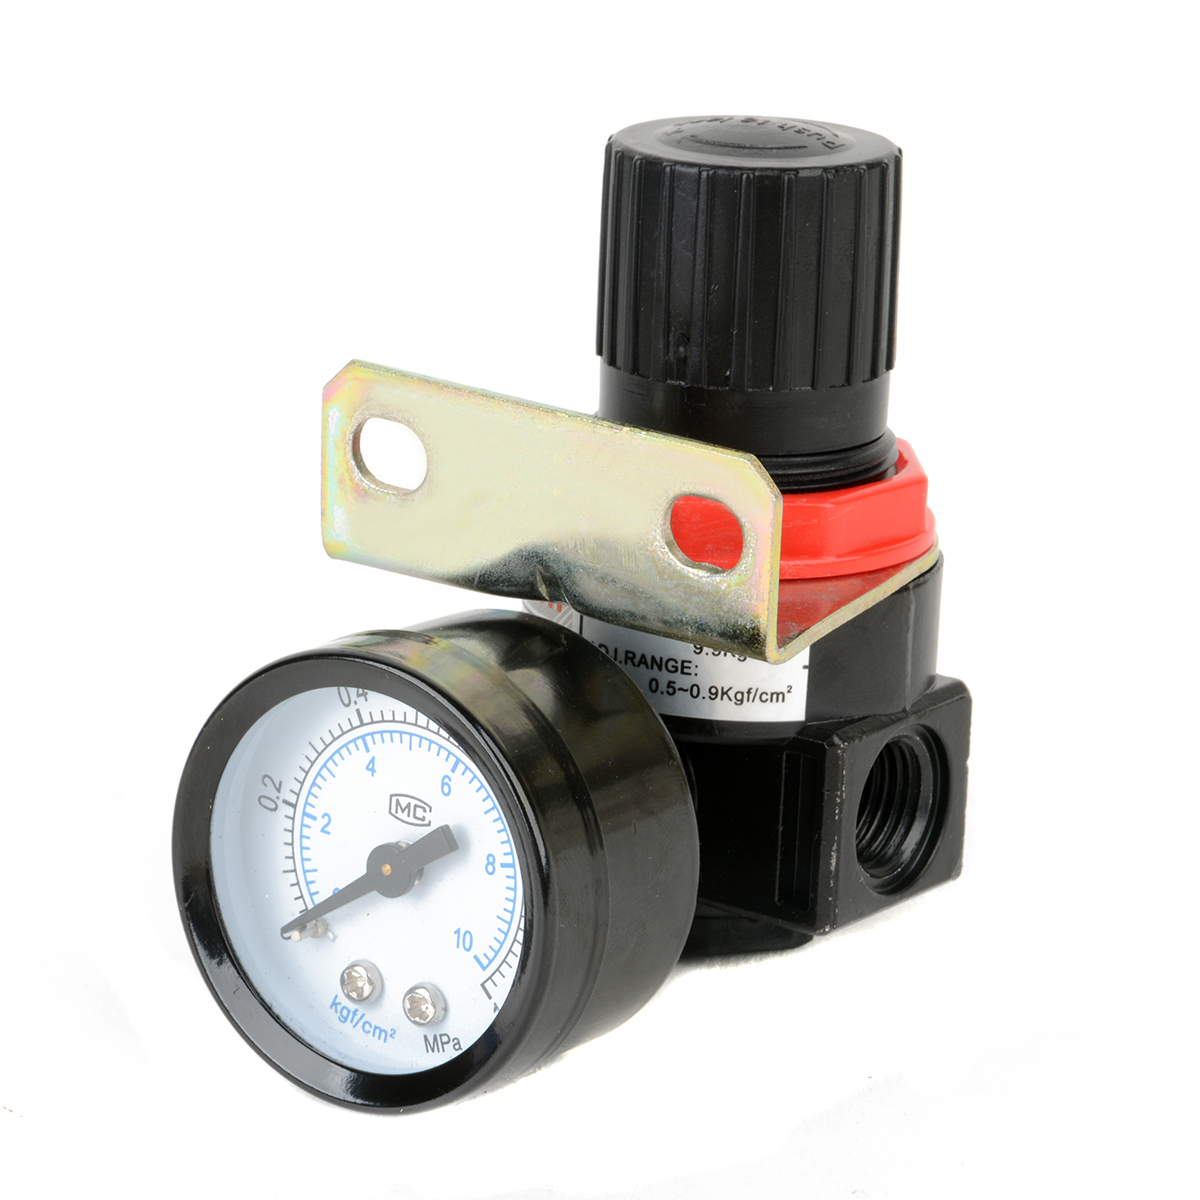 1pc Air Compressor Pressure Regulator Valve Air Control Pressure Gauge Relief Regulator 75x40x40mm 1pc air compressor pressure regulator valve air control pressure gauge relief regulator 75x40x40mm